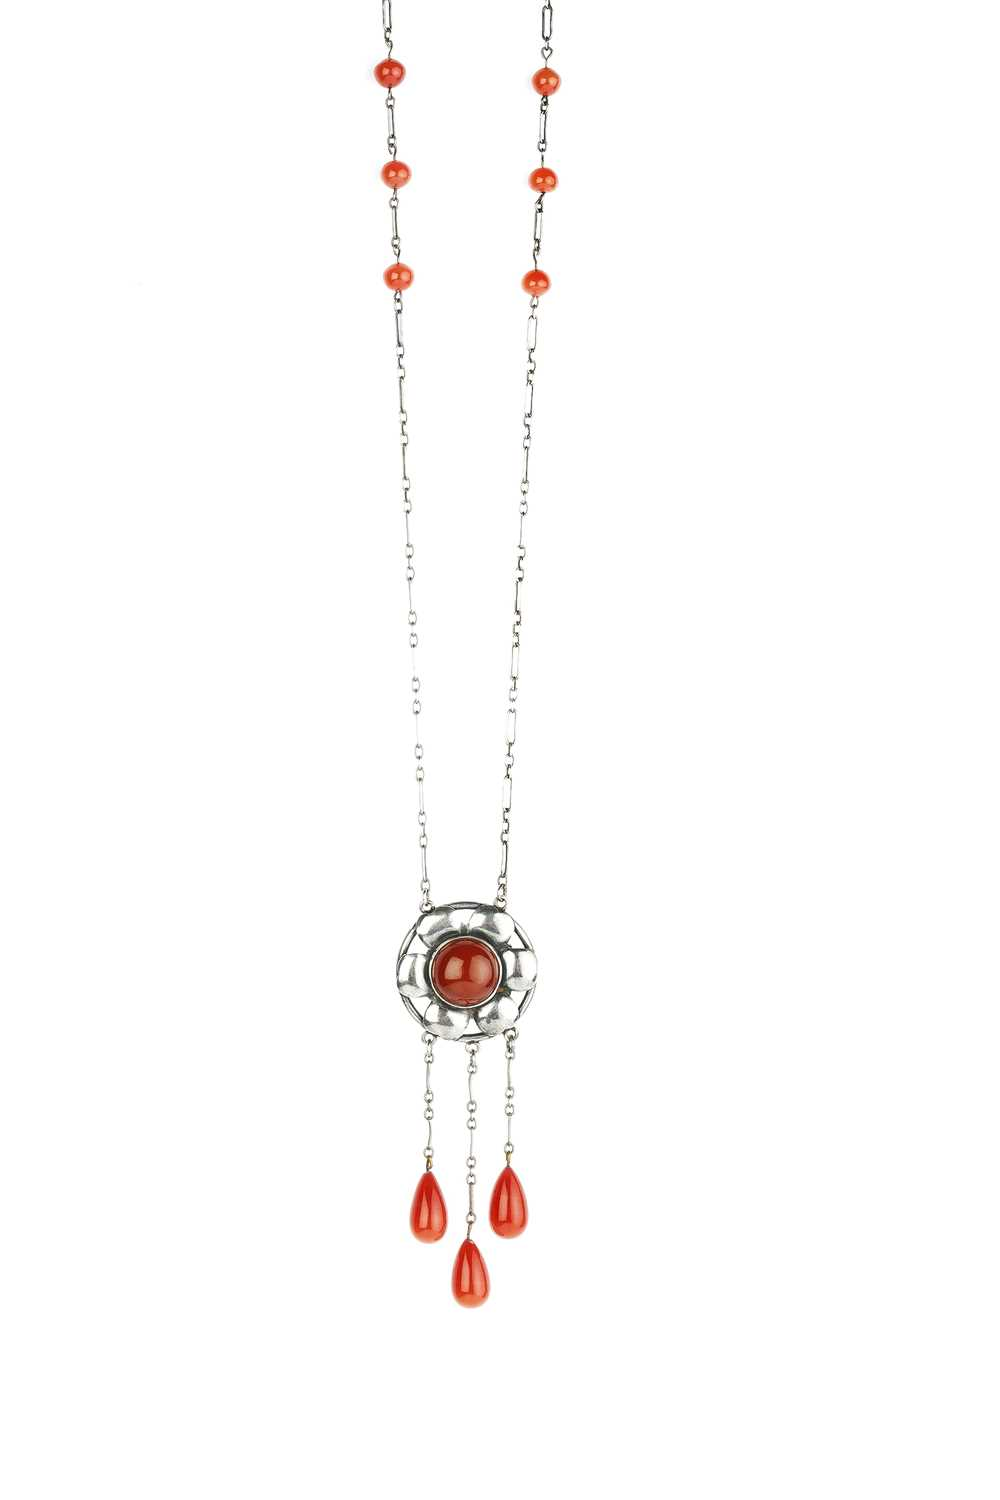 An Arts and Crafts pendant necklace, the openwork flowerhead panel centred with a red paste - Image 2 of 5